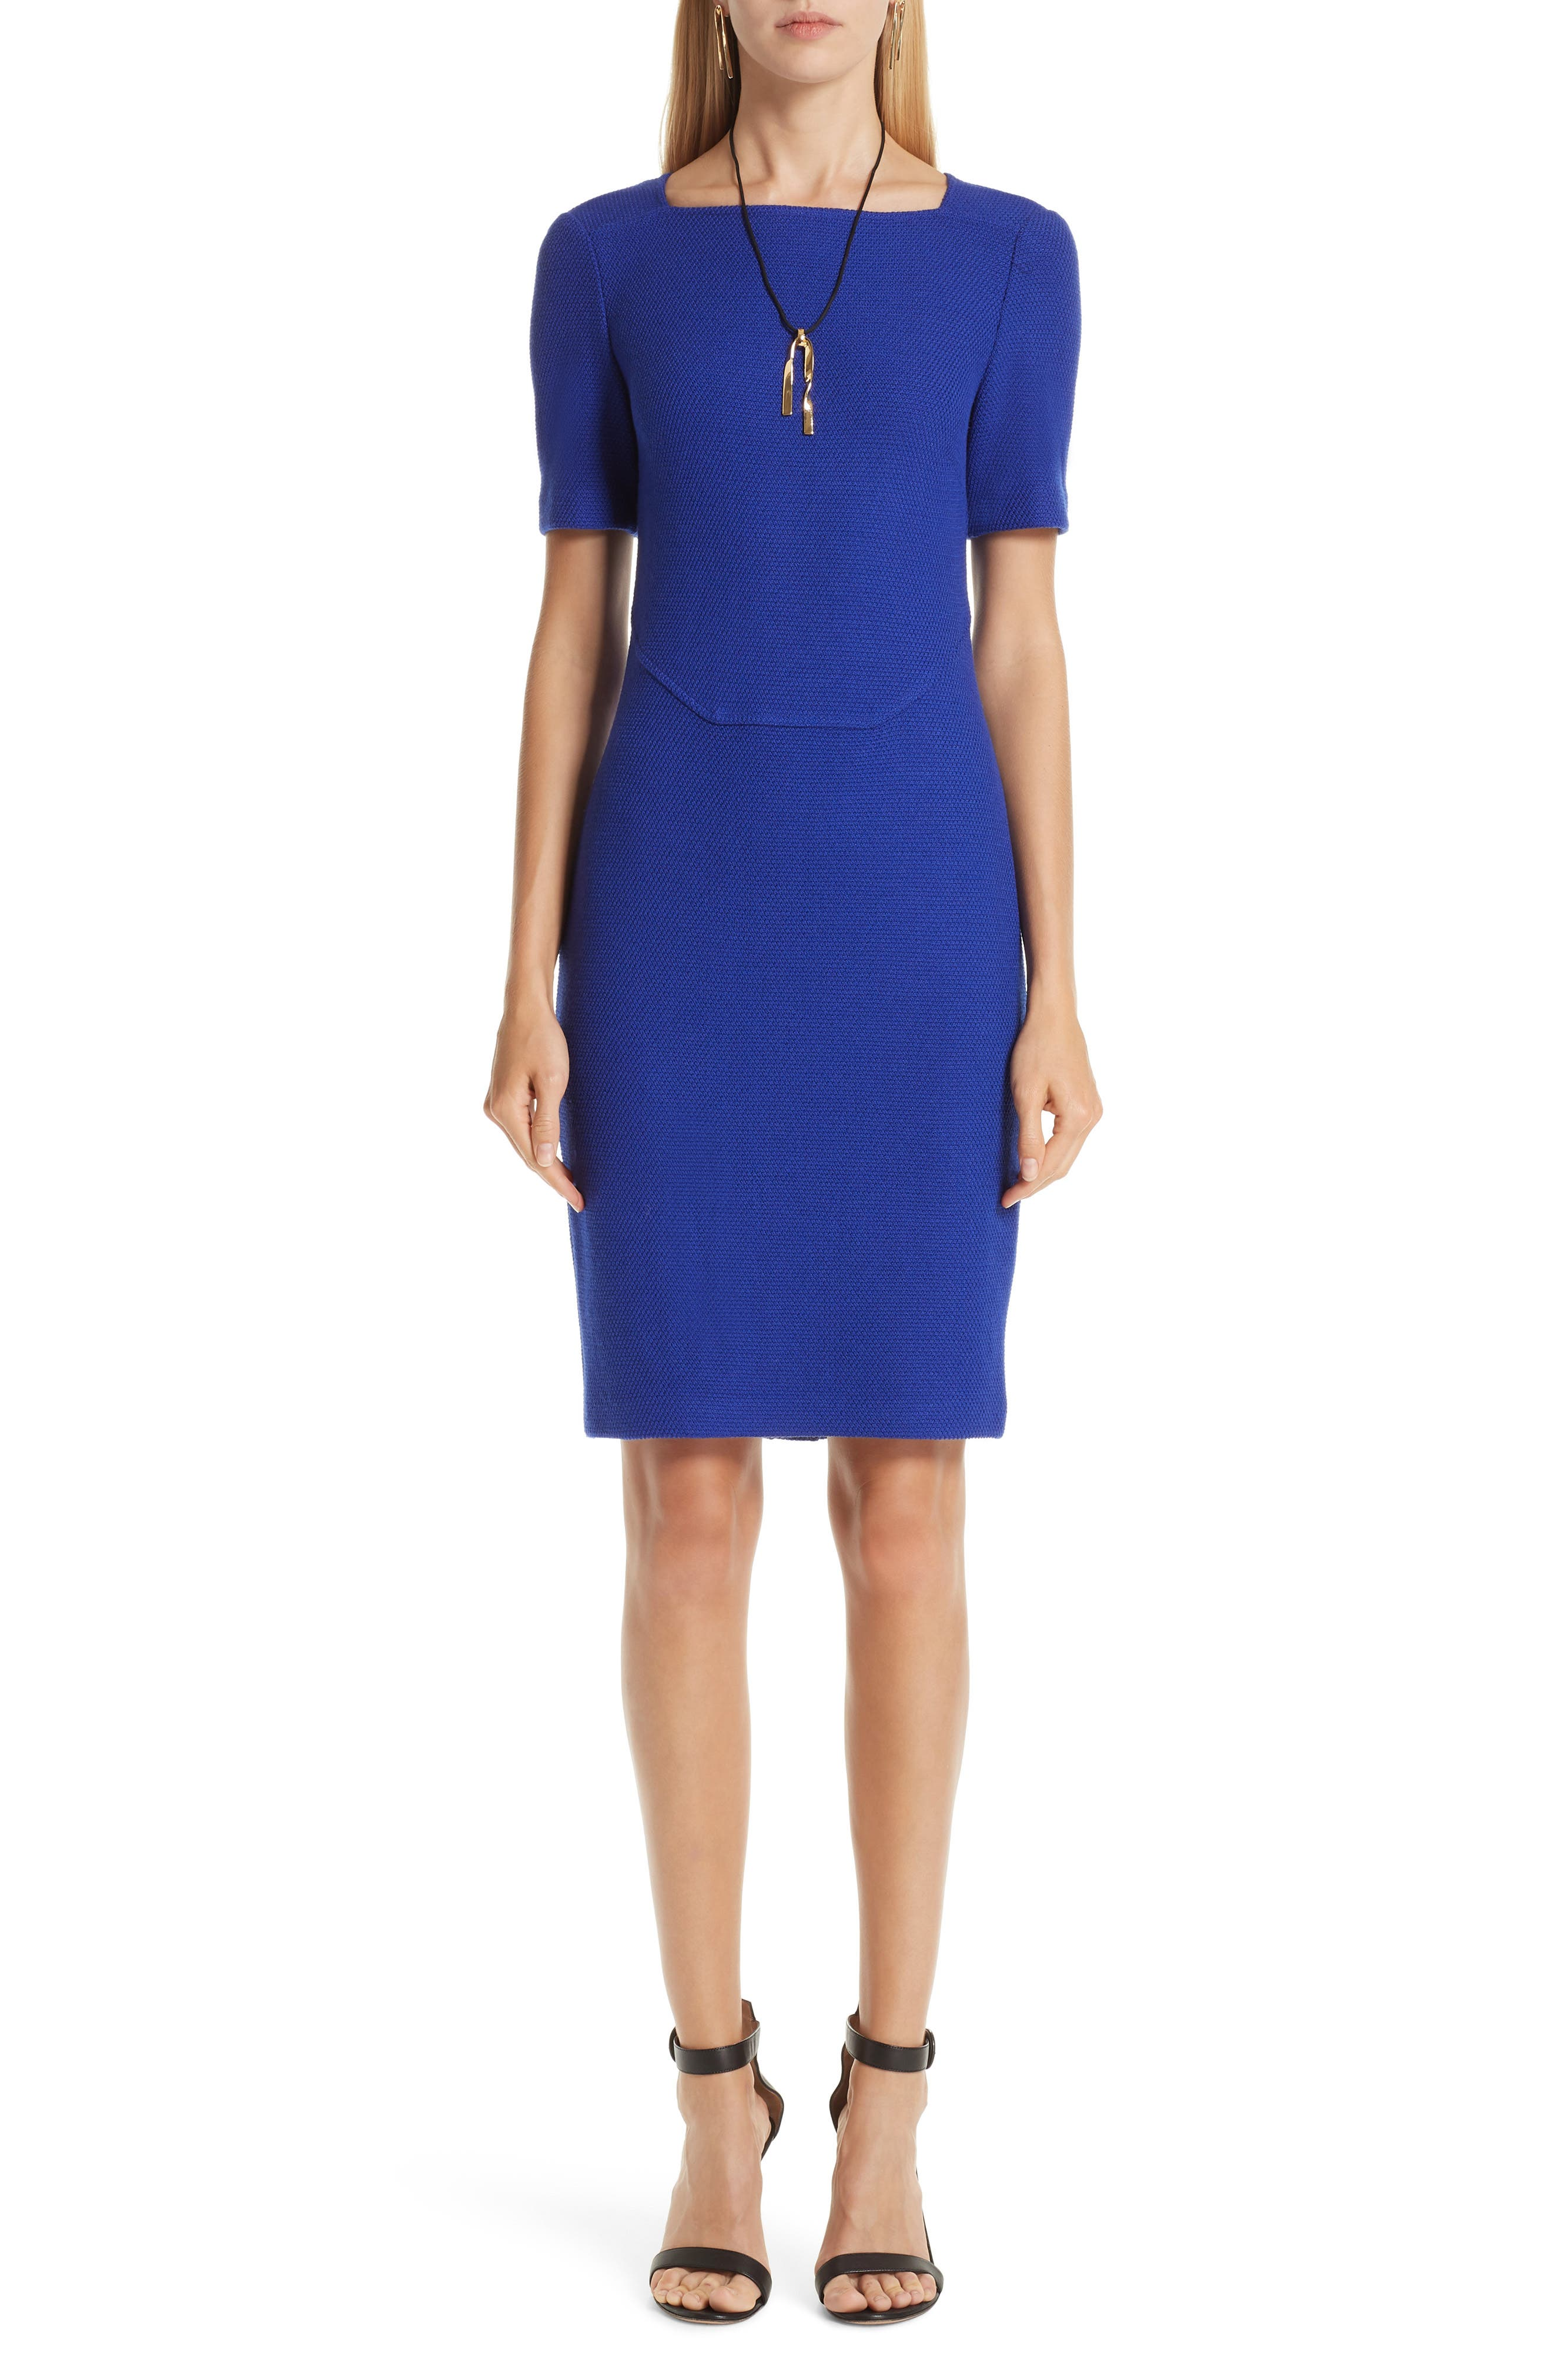 Irina Square-Neck Short-Sleeve Boucle-Knit Sheath Dress in Sapphire